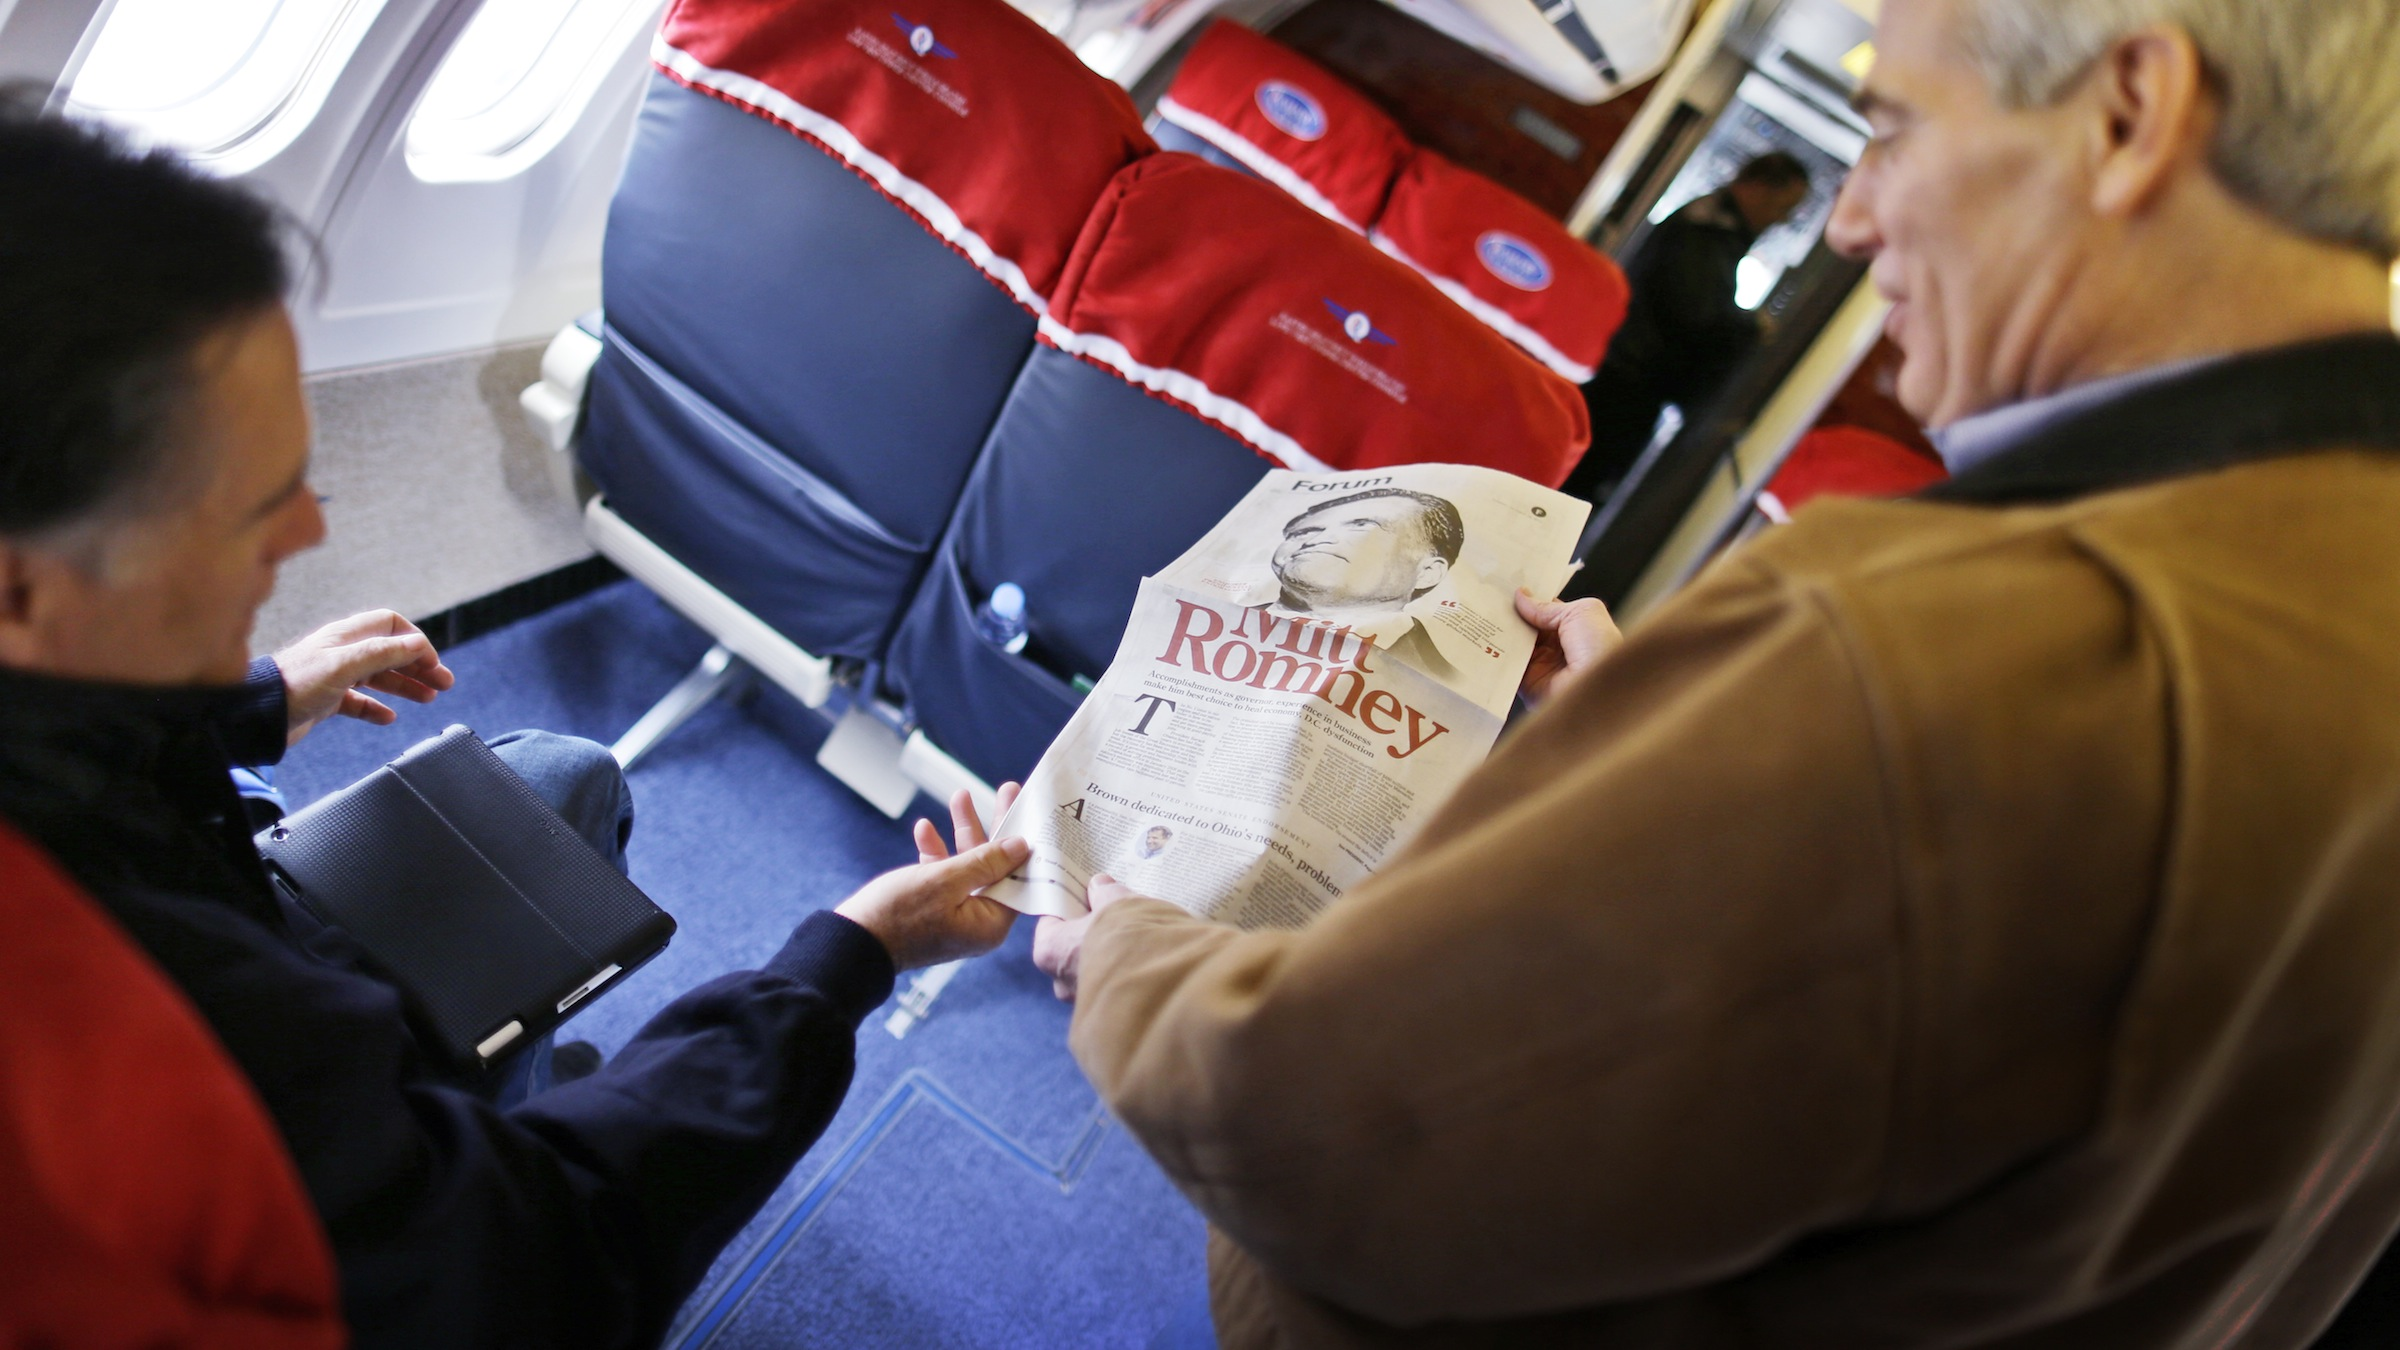 Republican presidential candidate and former Massachusetts Gov. Mitt Romney is shown a page from a newspaper which endorsed him by Sen. Rob Portman, R-Ohio, after he landed at Dayton International Airport in Vandalia, Ohio, Sunday, Oct. 28, 2012. (AP Photo/Charles Dharapak)